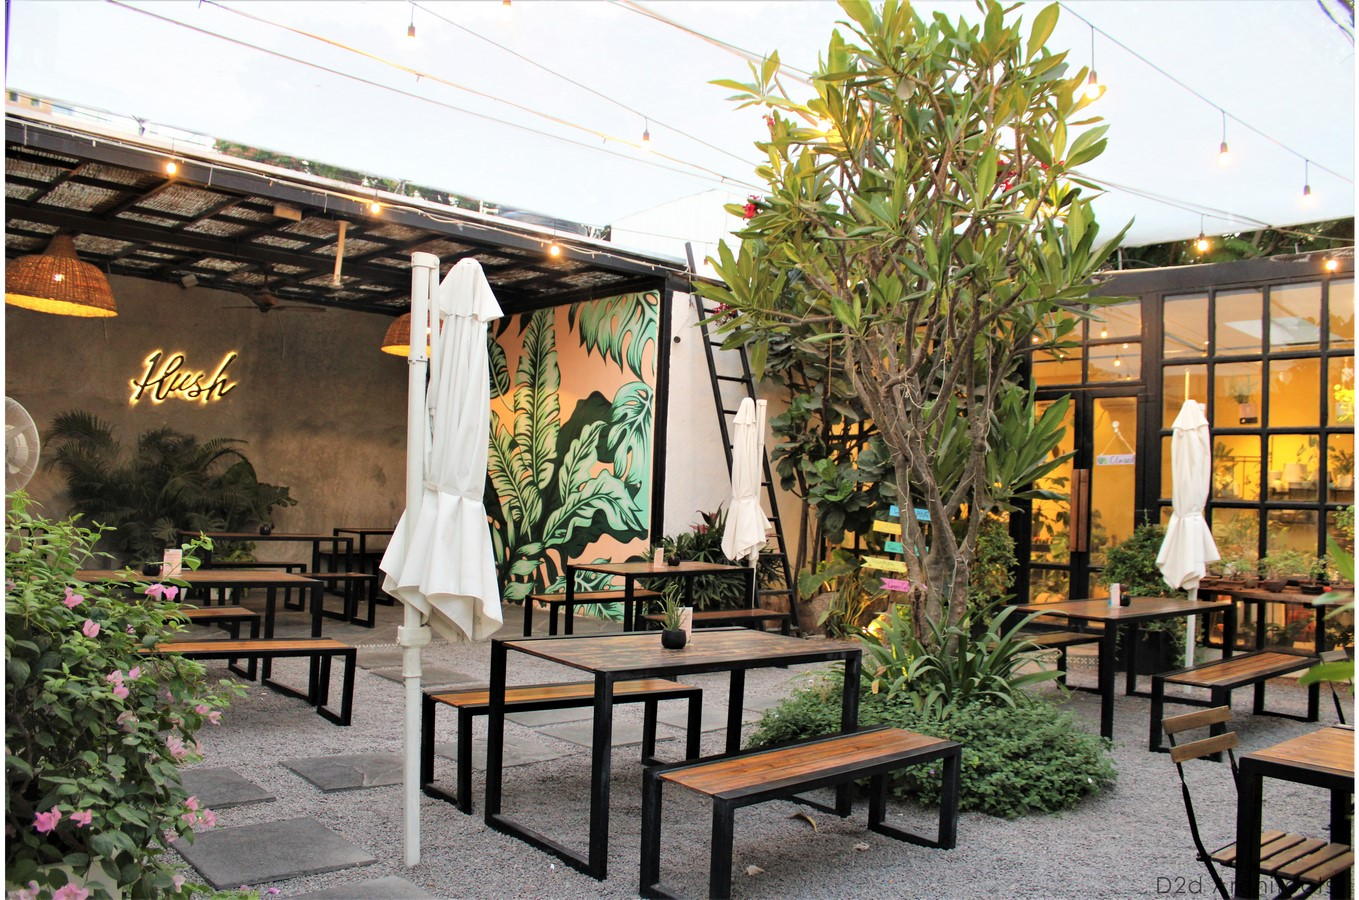 Hush cafe by D2d Architects - Sheet2